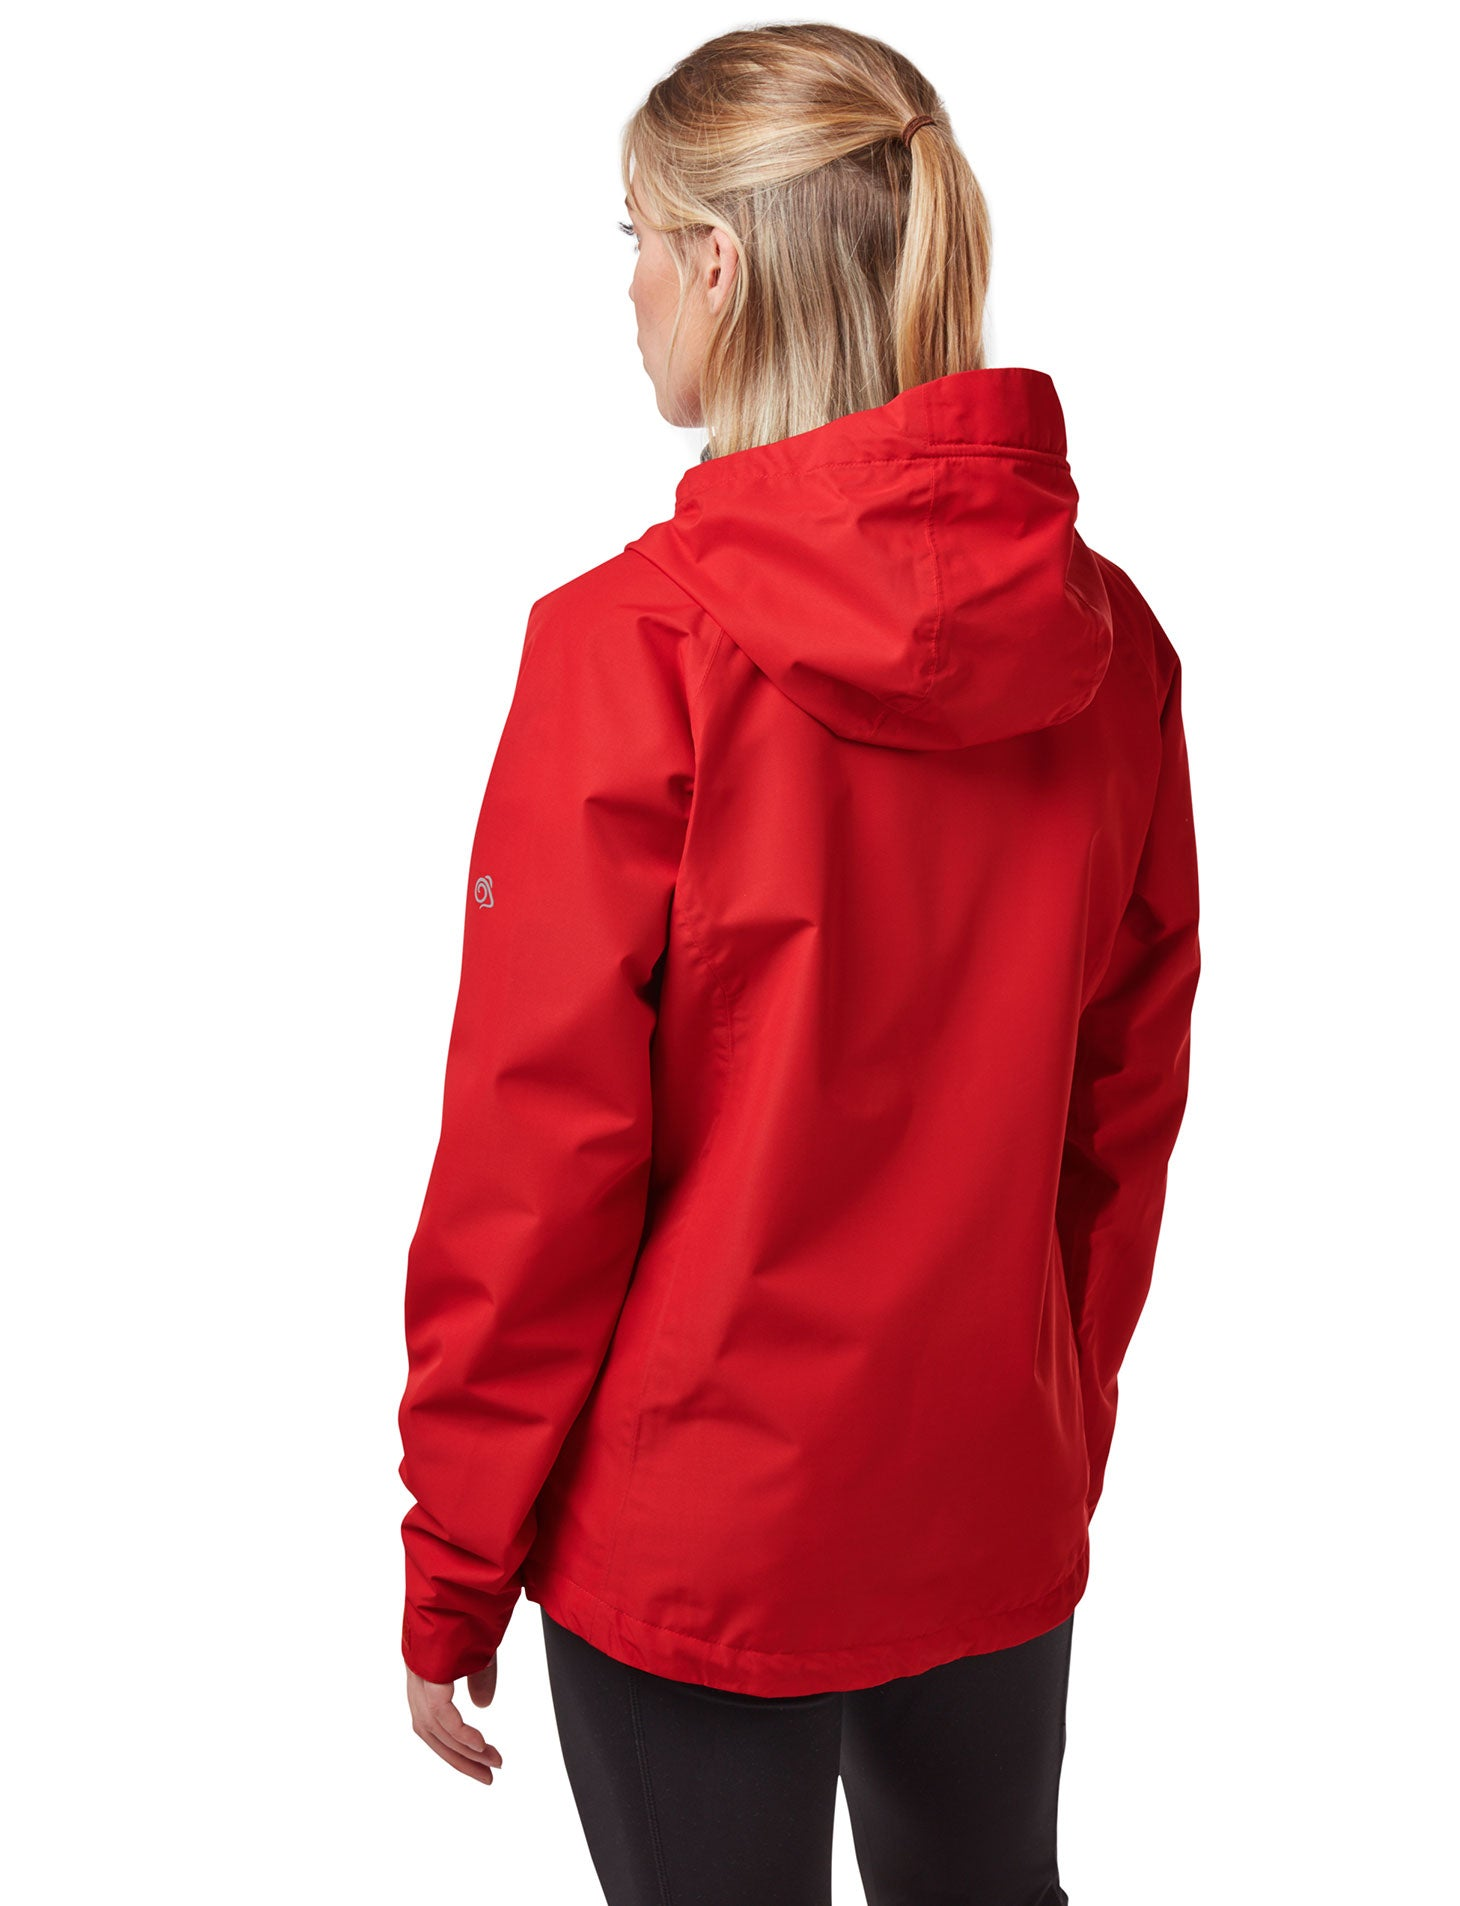 Orion Ladies Jacket by Craghoppers